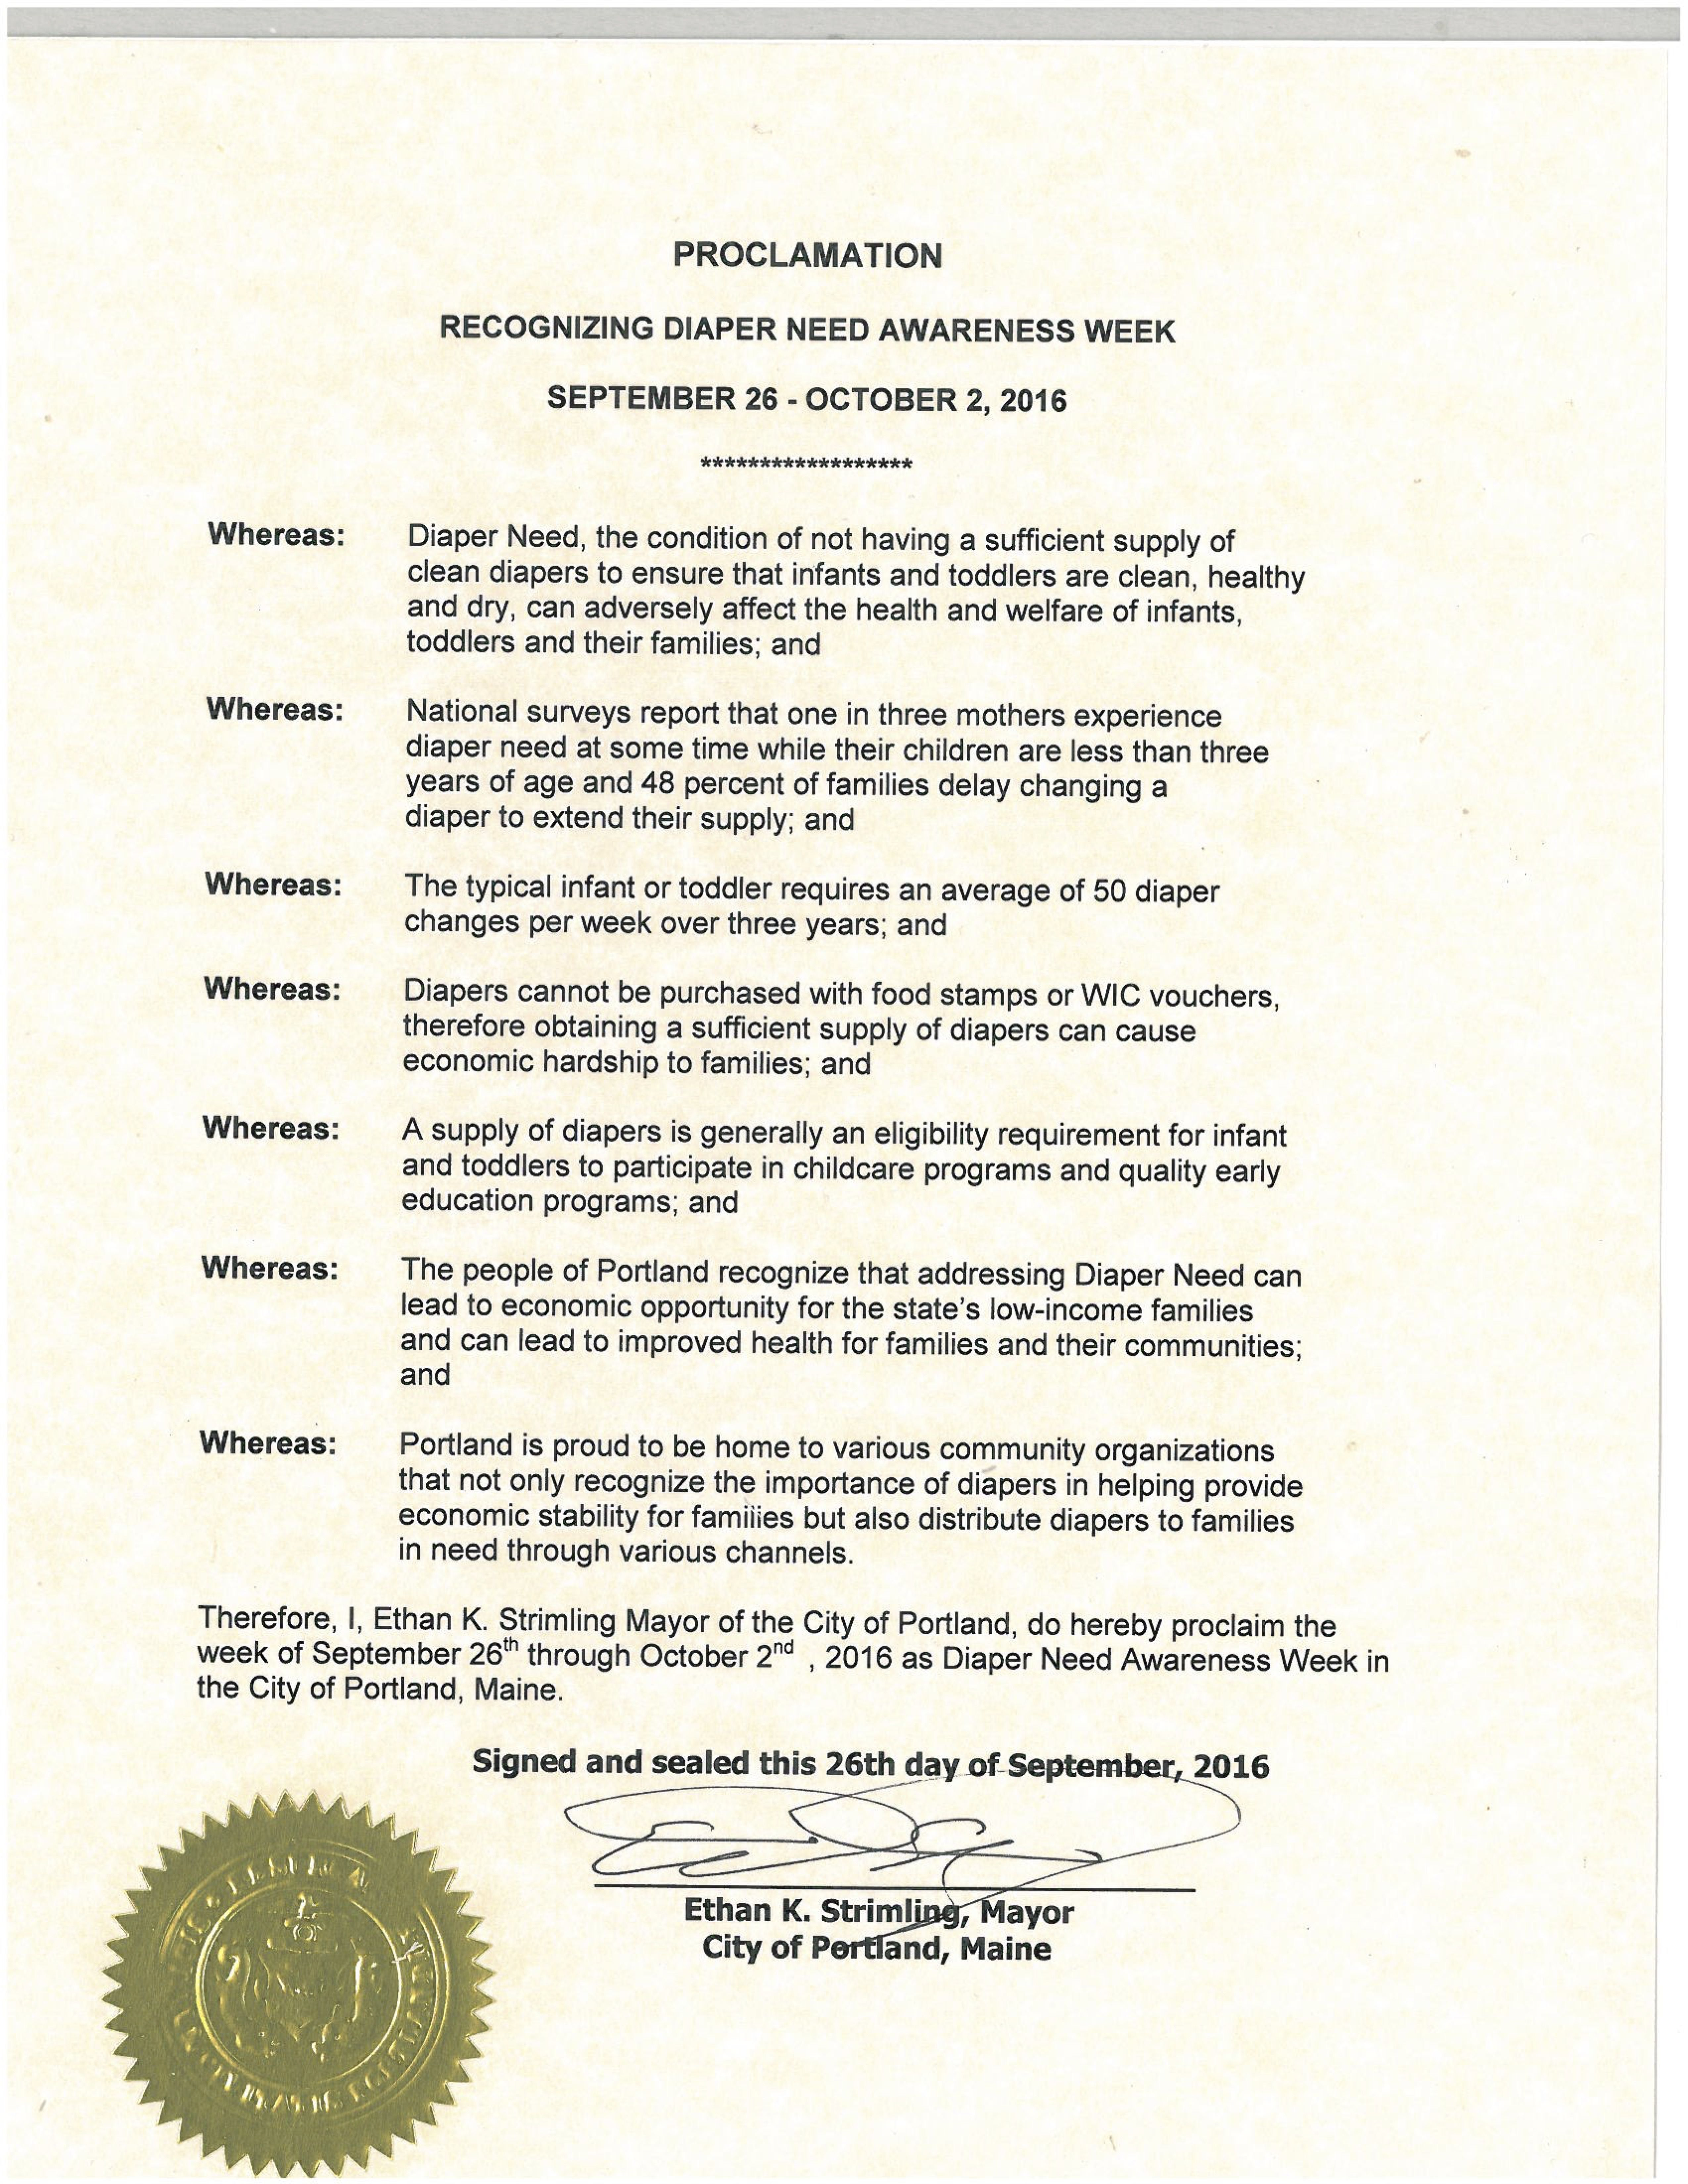 Portland, ME - Mayoral proclamation recognizing Diaper Need Awareness Week (Sept. 26 - Oct. 2, 2016) #DiaperNeed www.diaperneed.org